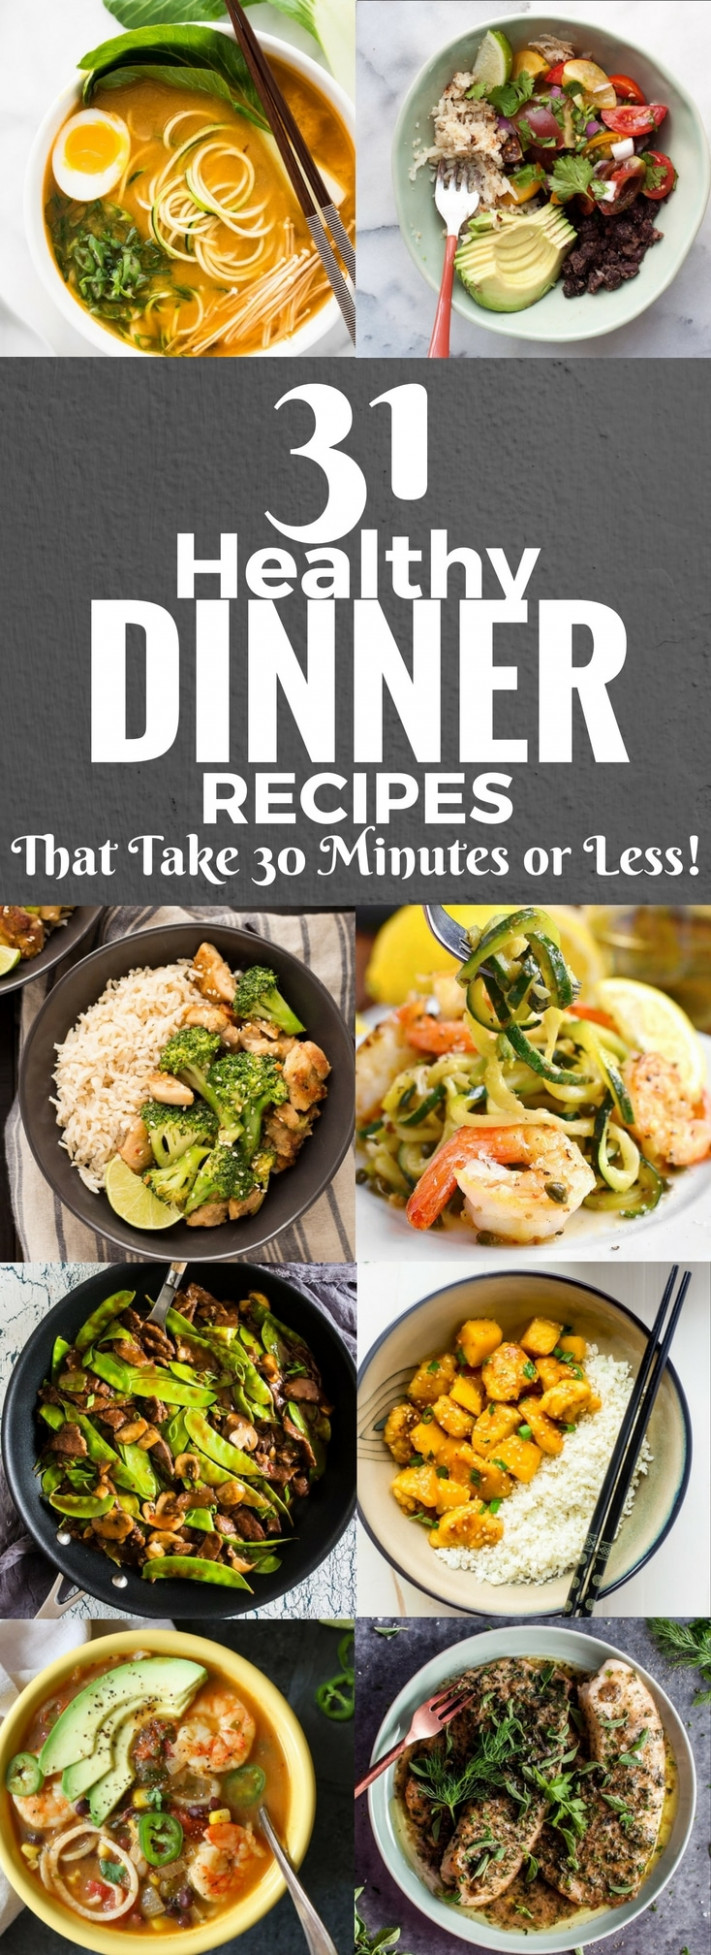 31 Healthy Dinner Recipes That Take 30 Minutes or Less ..